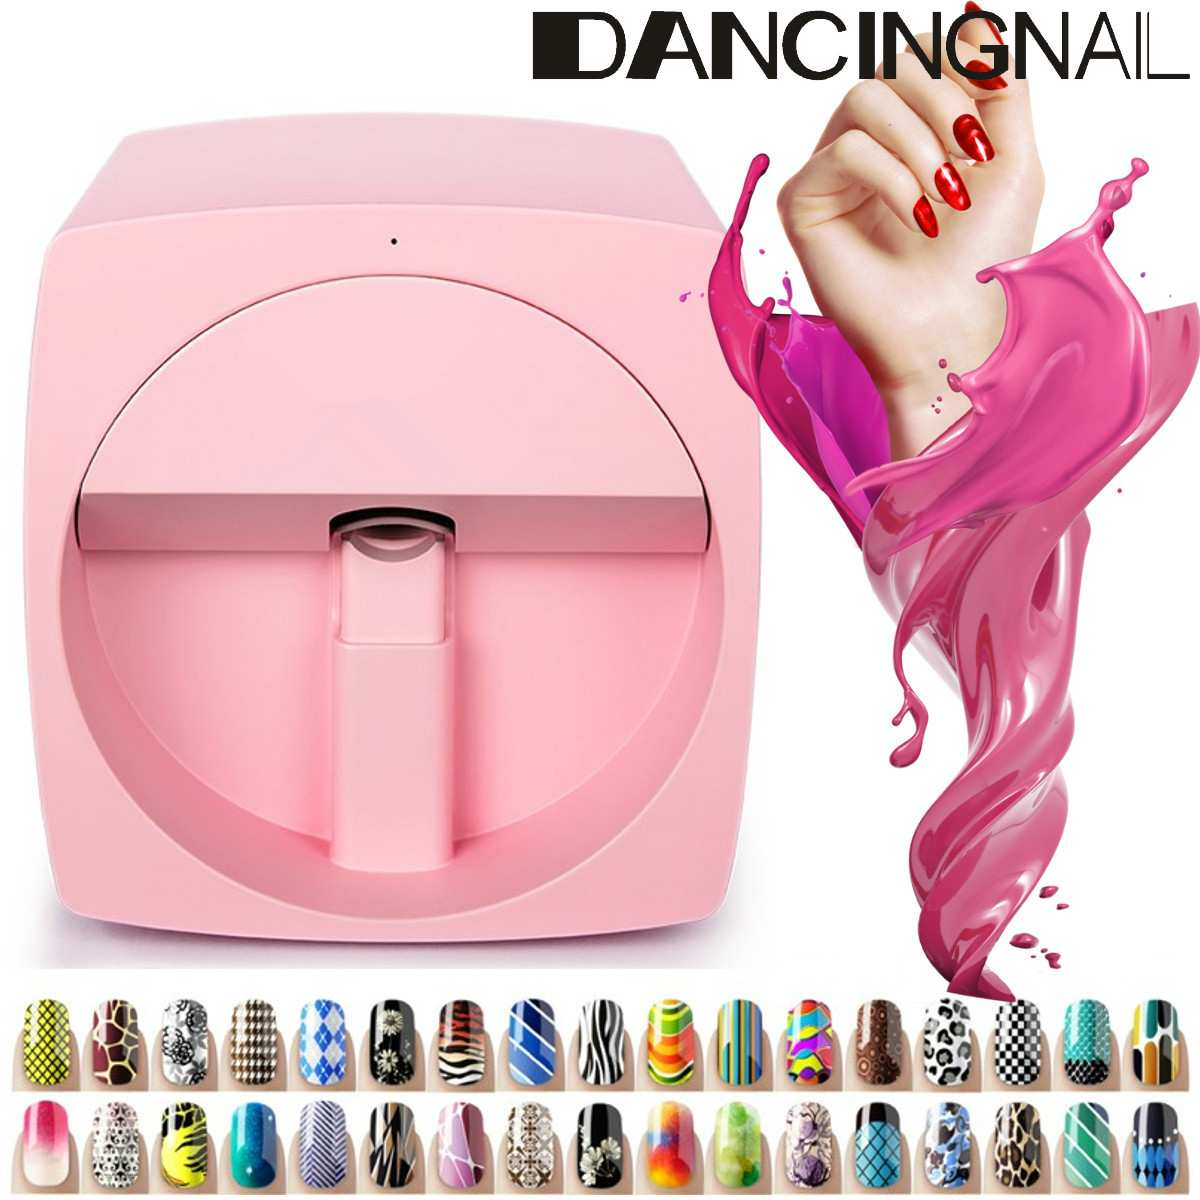 3D Mobile Nail Printer Manicure Transmission Picture Photo Pattern Color Printing Machine Advanced Nail Art Equipment